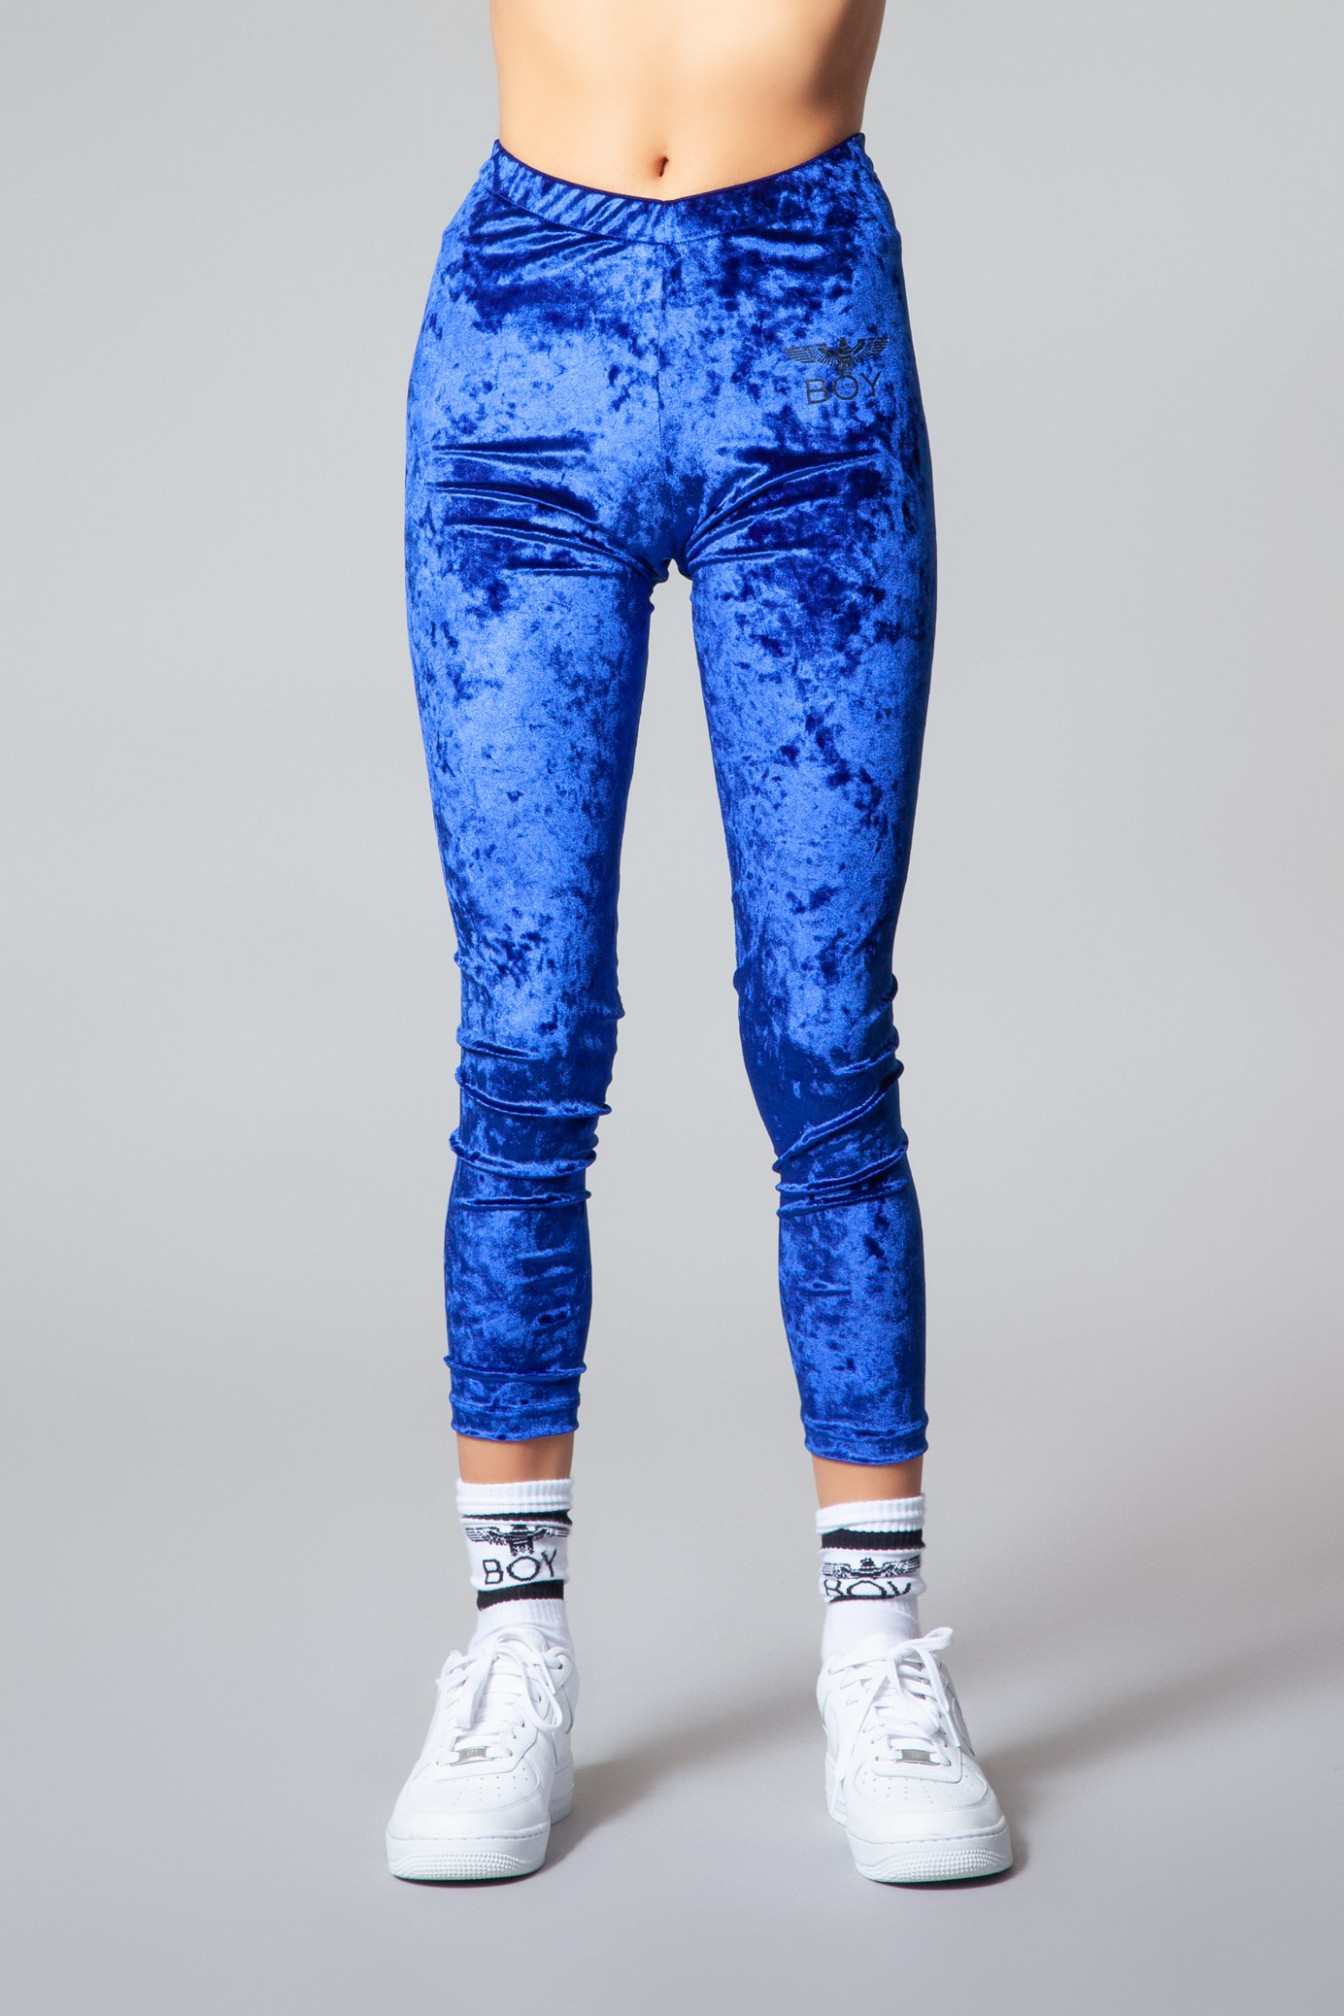 LEGGINGS - BLD2182 - BOY LONDON